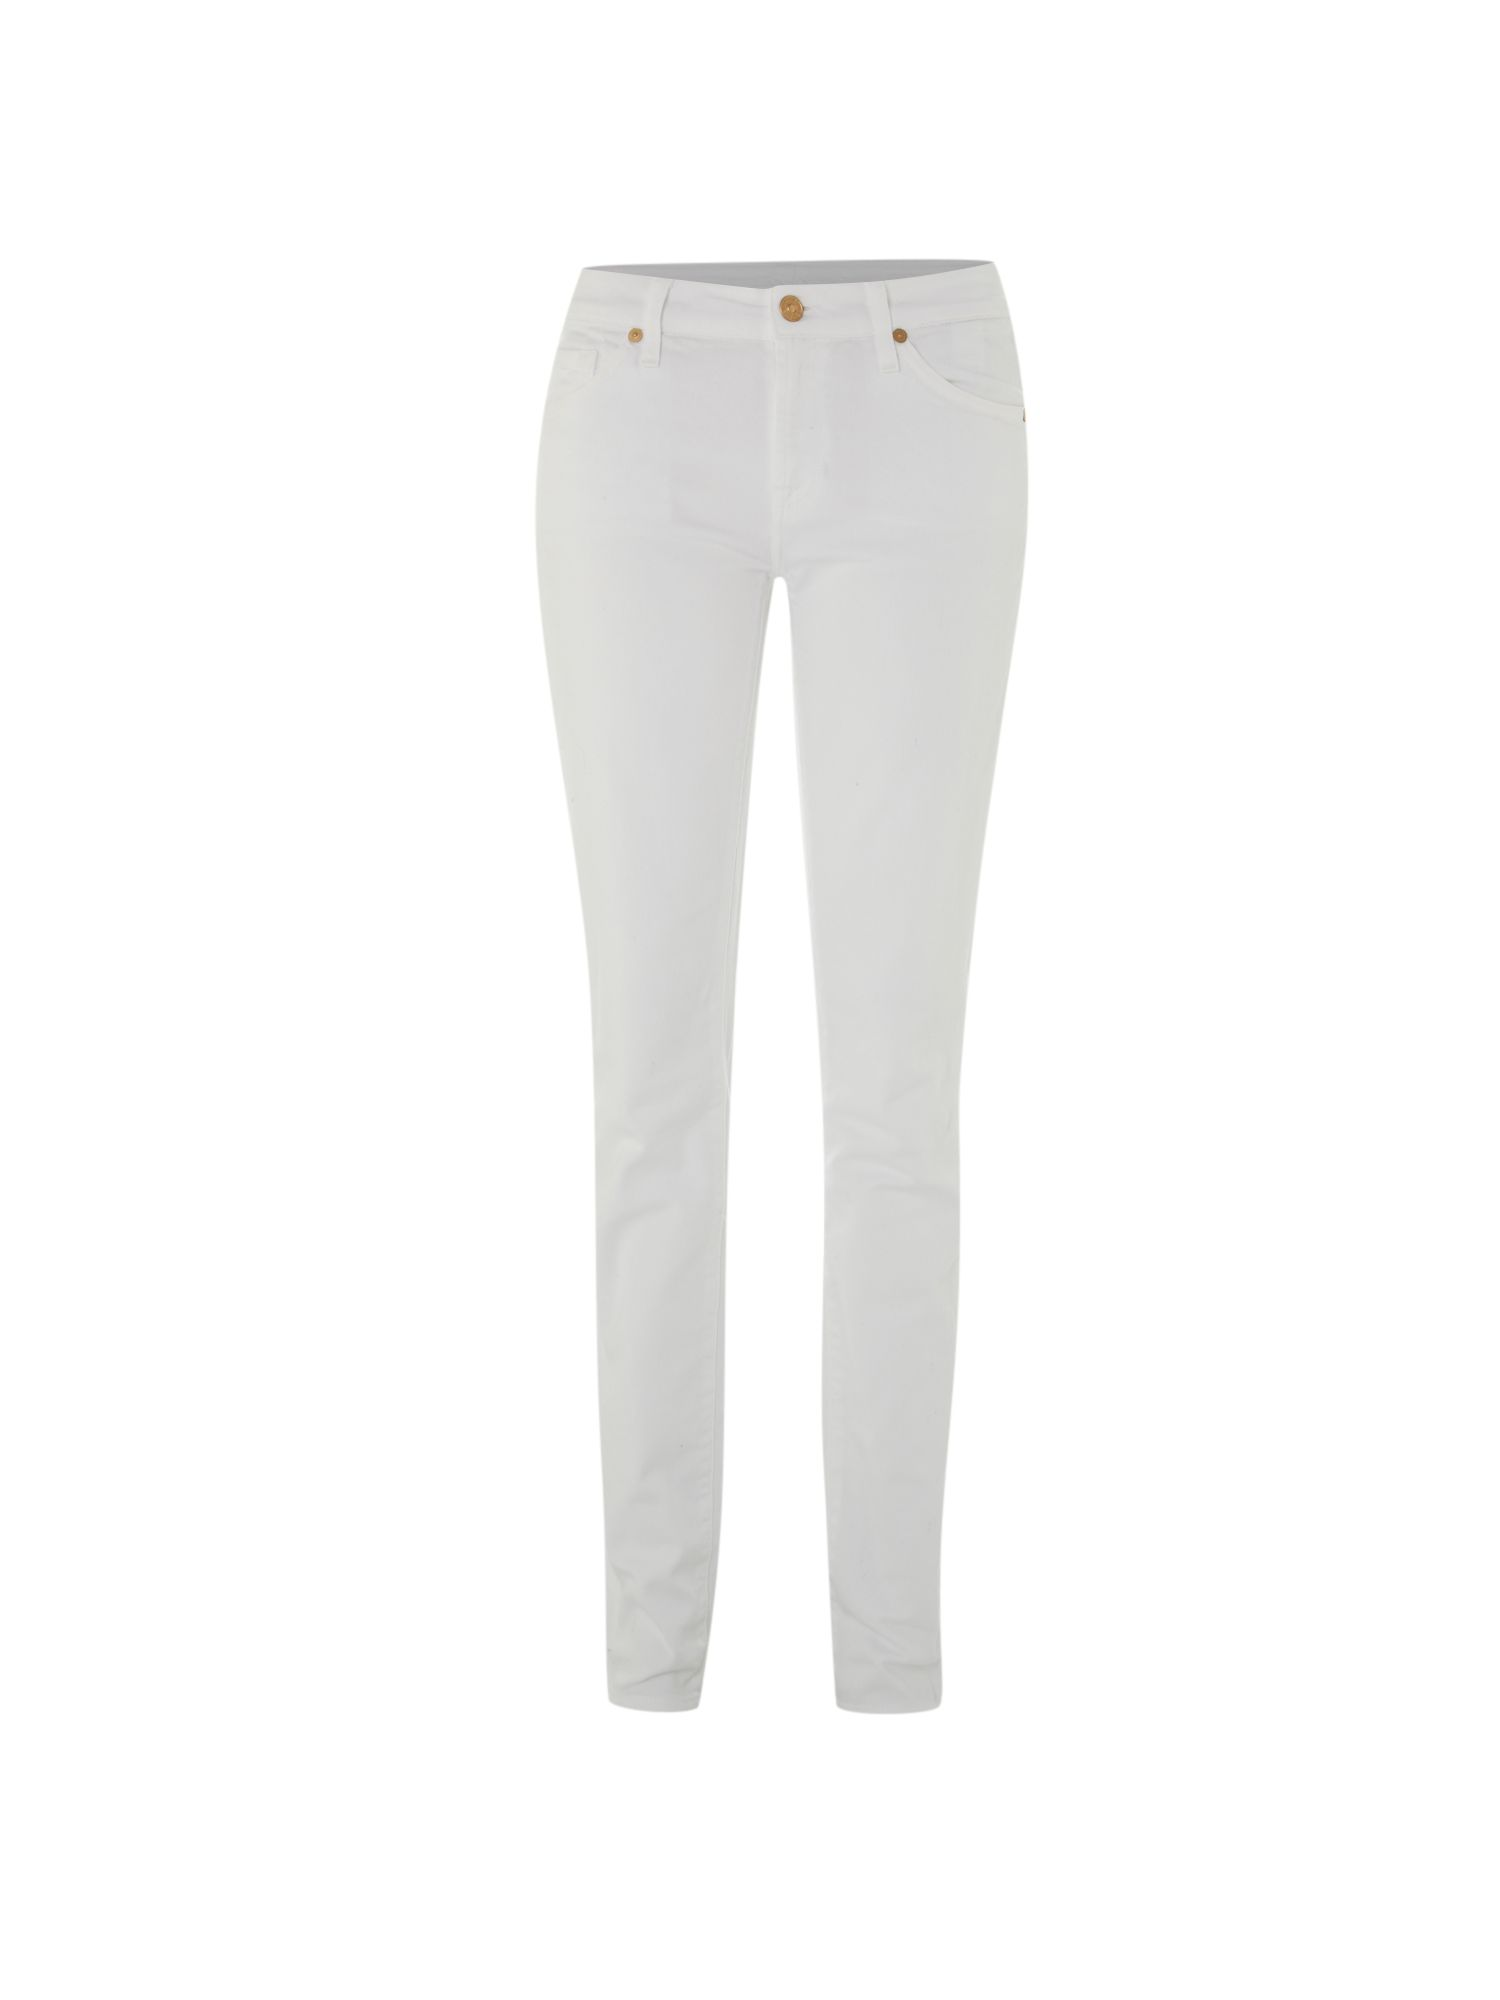 Cristen skinny jeans in White Denim